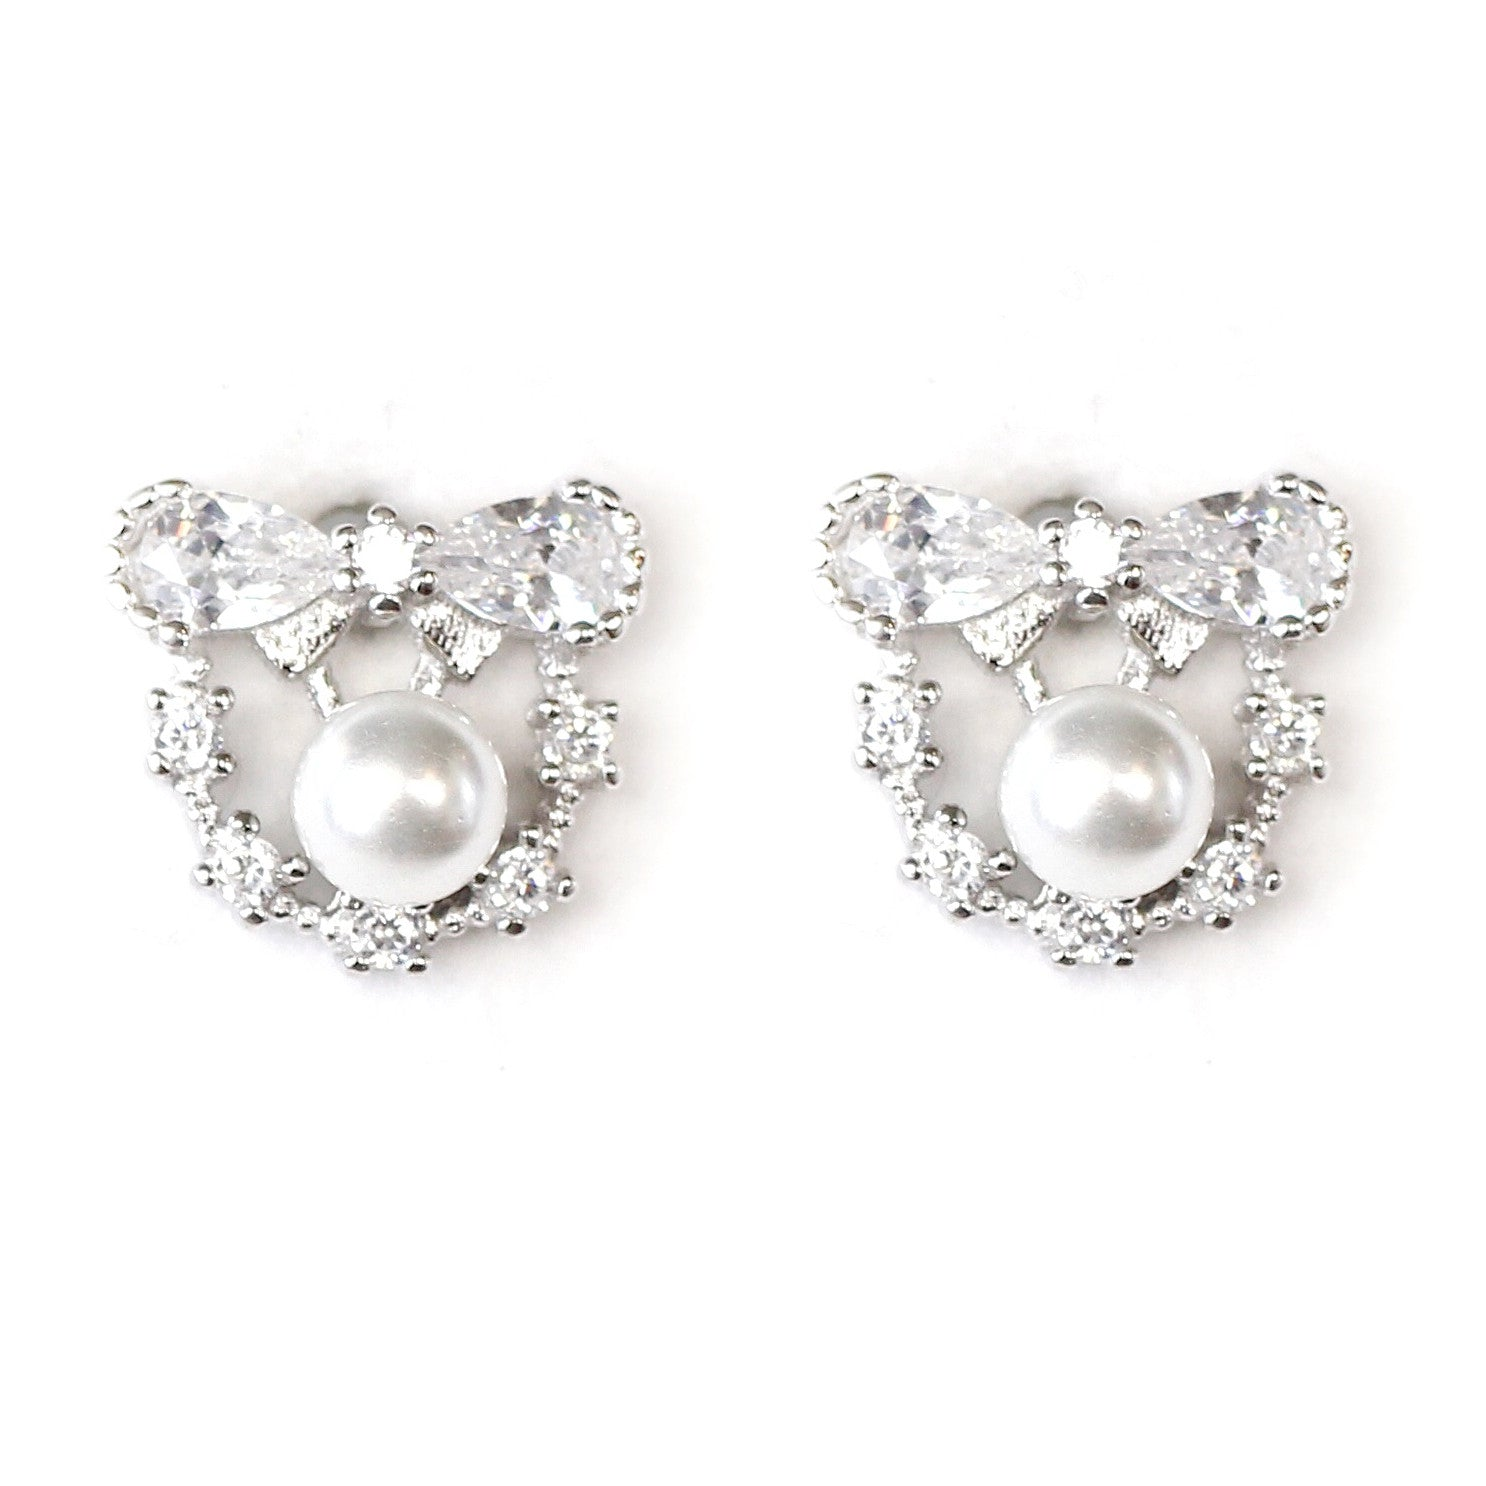 Marie Bow and Pearl Silver Earrings